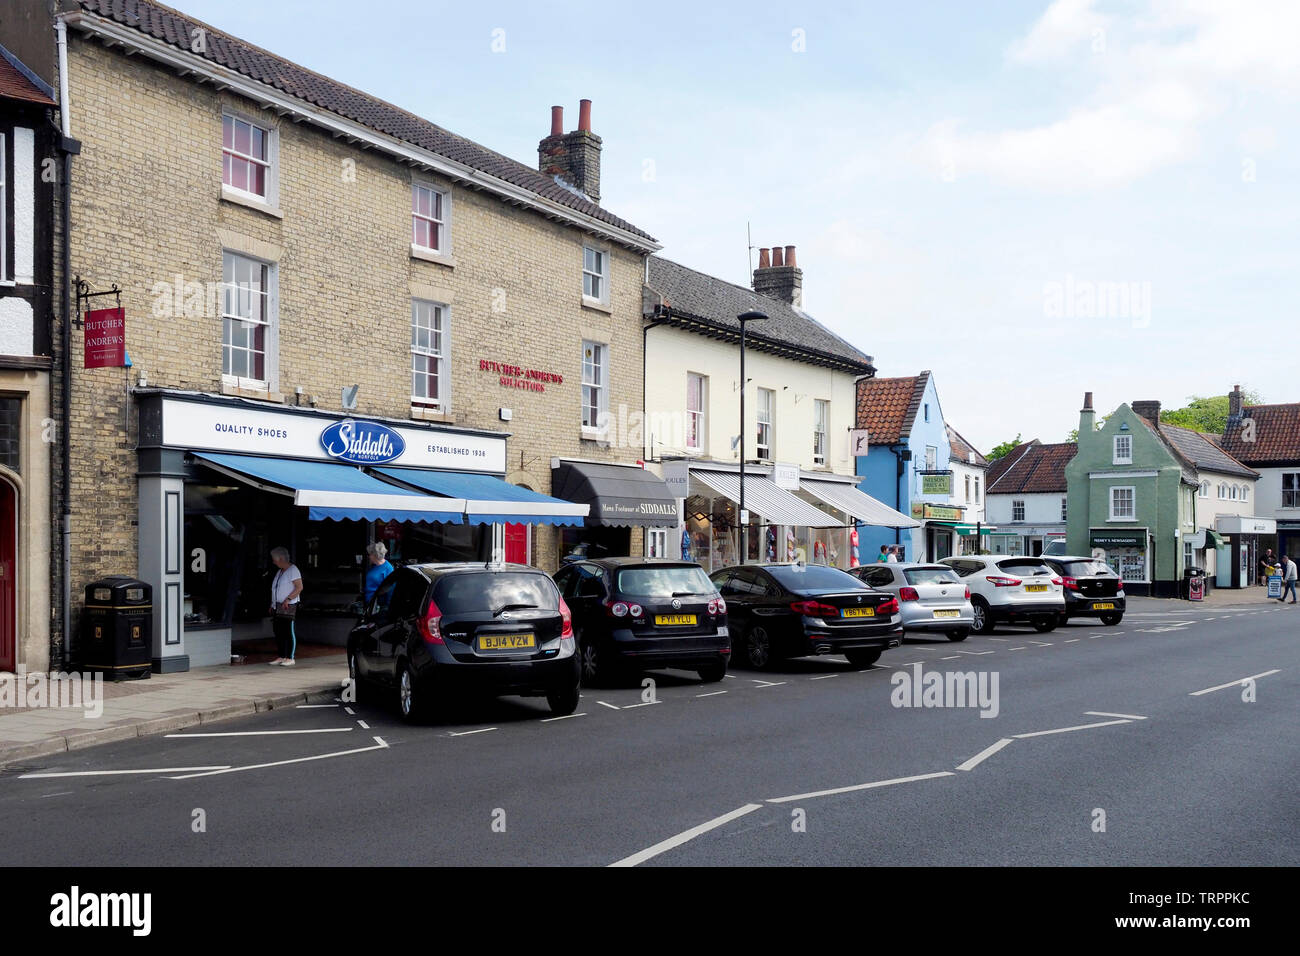 Quaint Georgian buildings in the North Norfolk market town of Holt, a thriving town attracting many tourists. Stock Photo